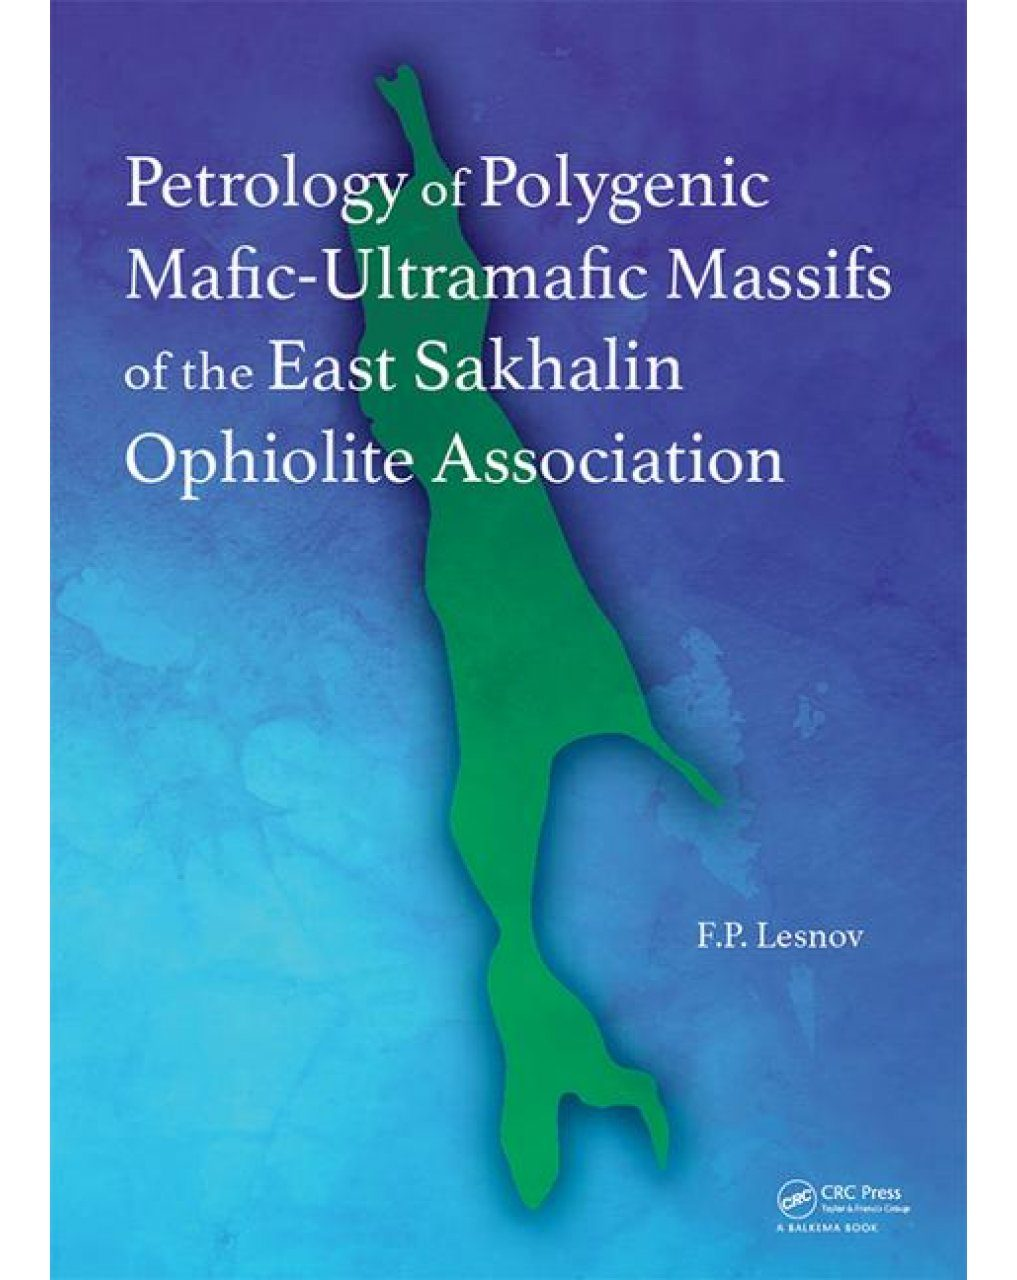 Petrology of Polygenic Mafic-Ultramafic Massifs of the East-Sakhalin Ophiolite Association